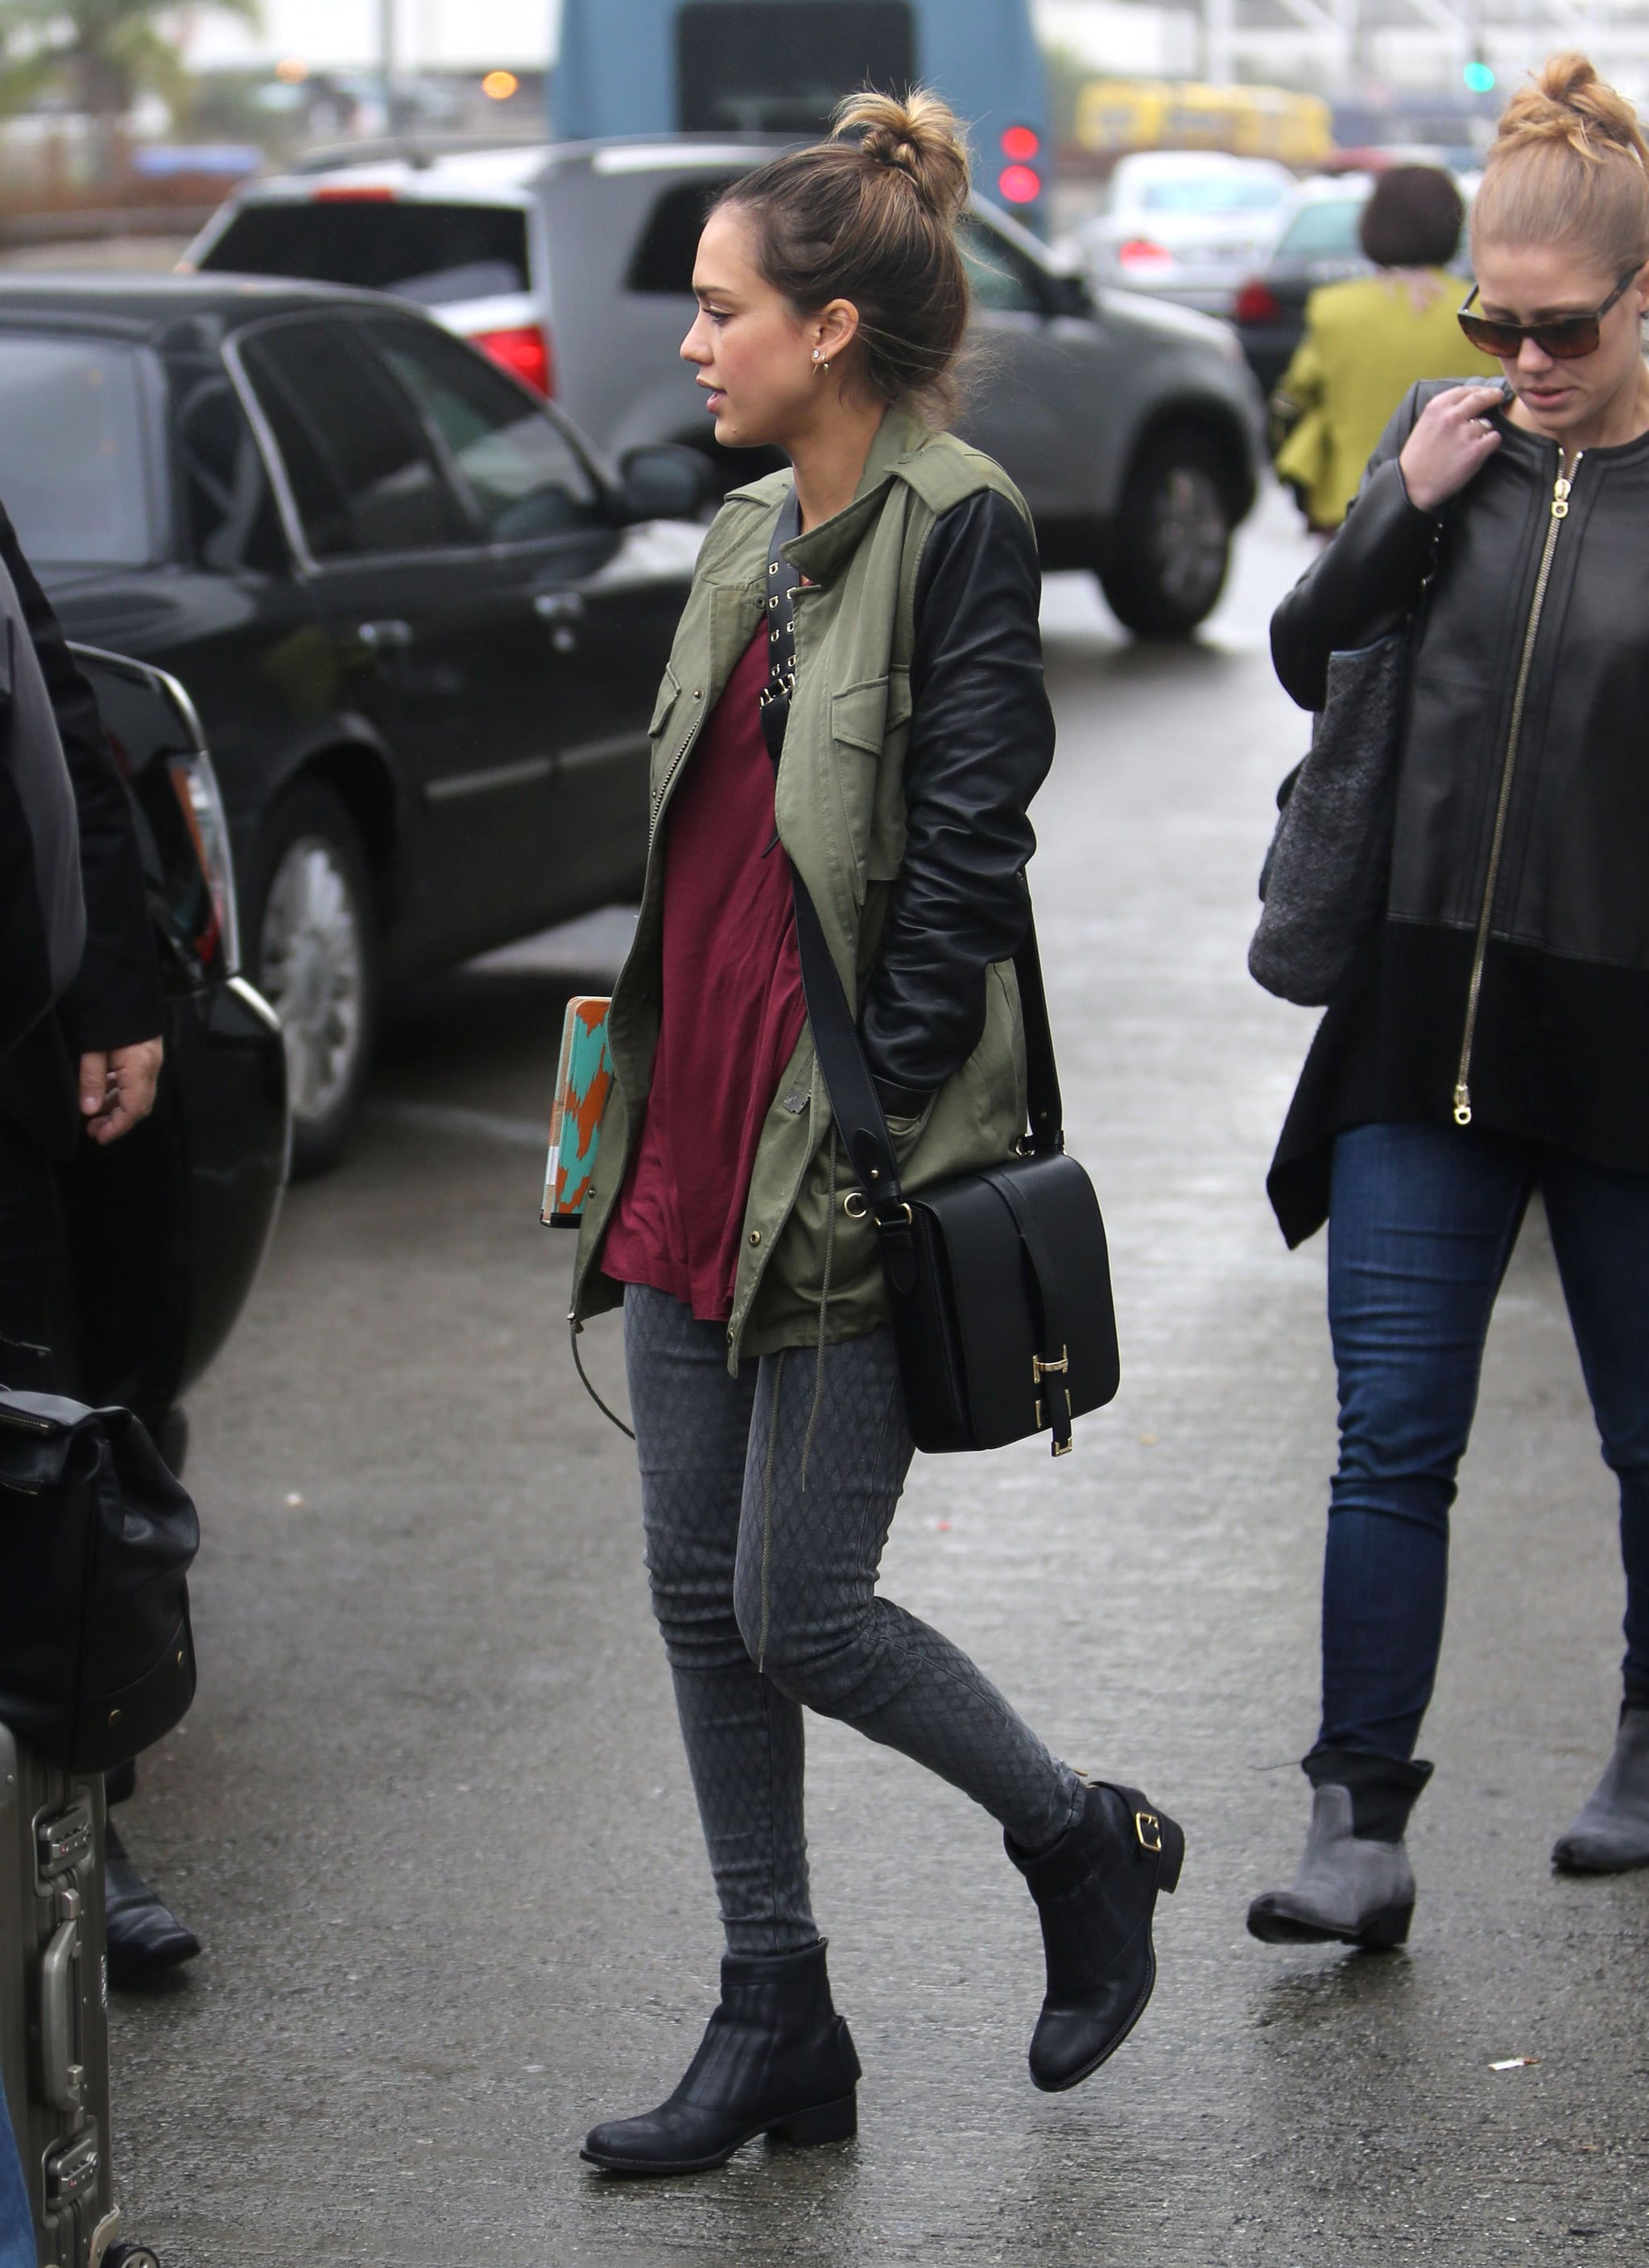 Even a rainy day can't damper Jessica's killer style. The model mom bundled up in a leather-sleeved military jacket by Sanctuary, fishnet-print Current/Elliott denim, and leather Rupert Sanderson ankle boots.